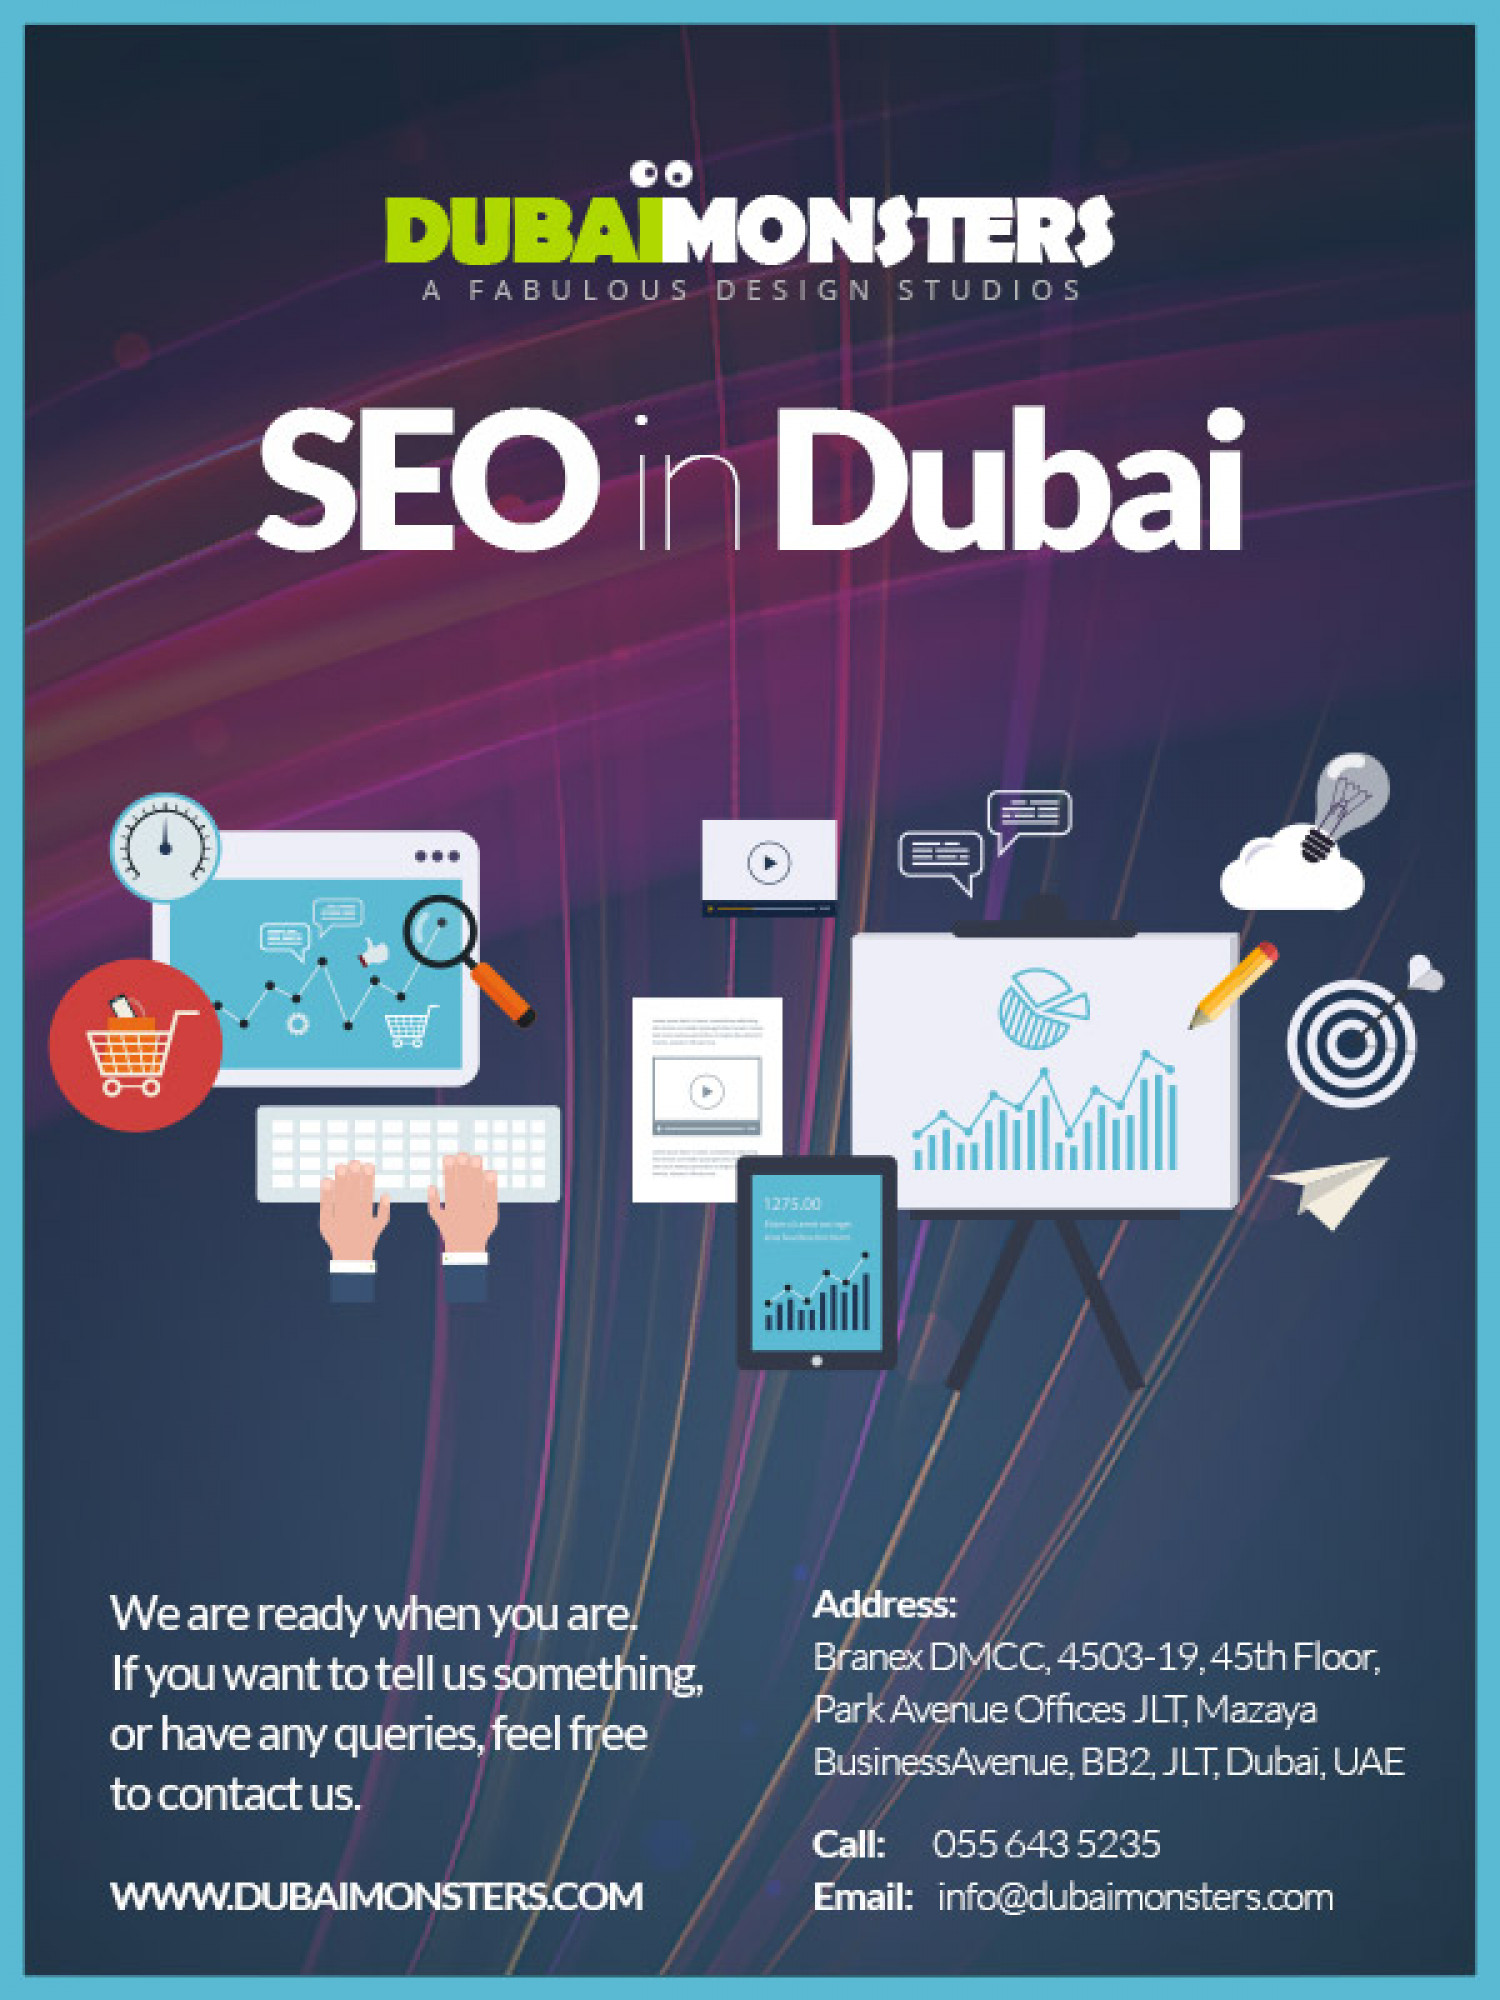 SEO In Dubai Infographic